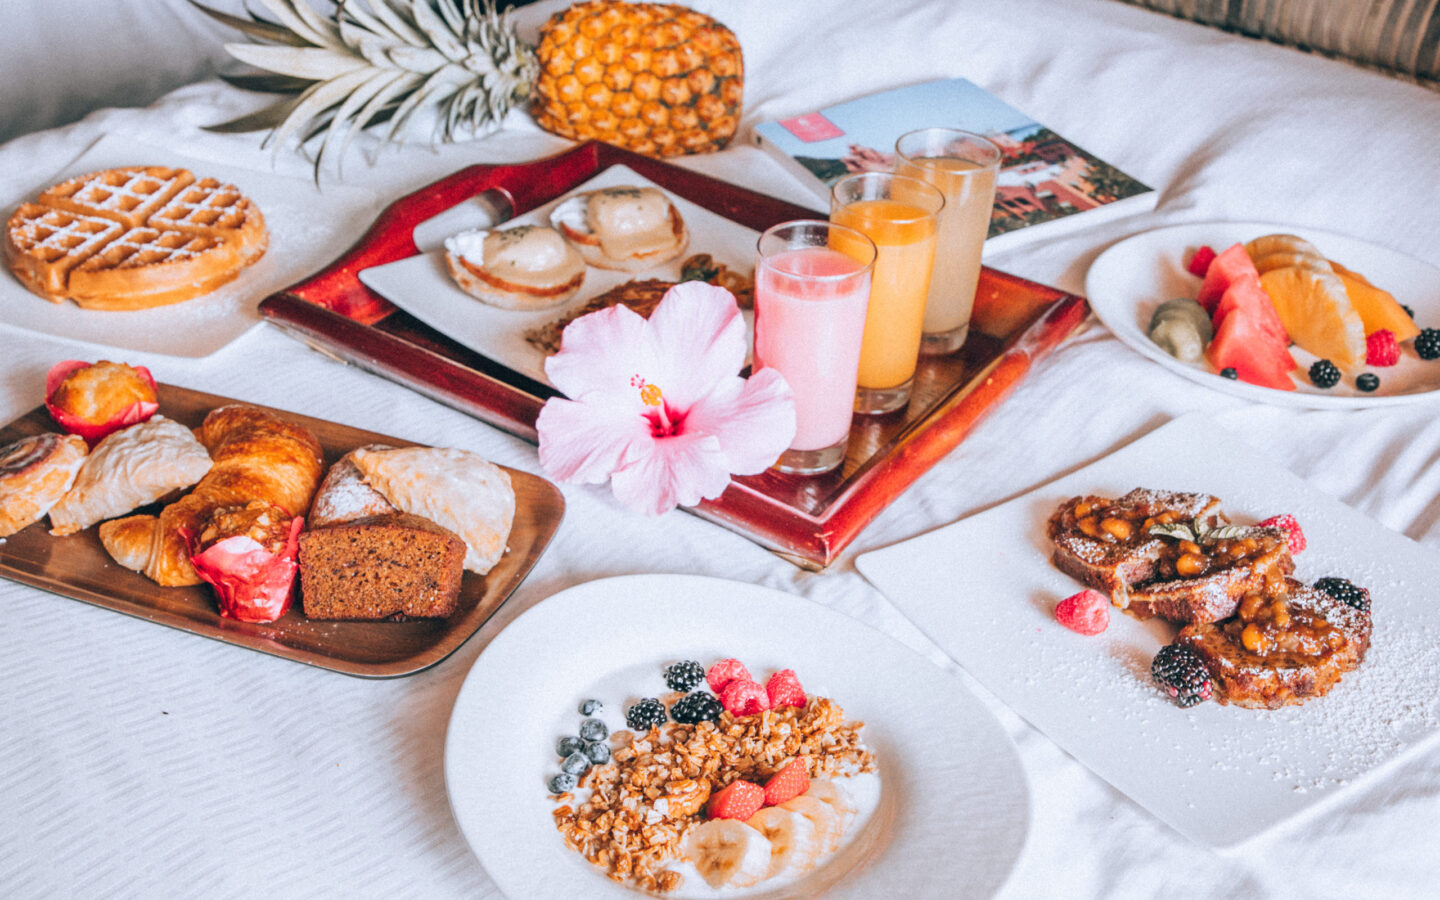 pastries on tray near cereals on plate and juice on another tray beside pineapple fruit